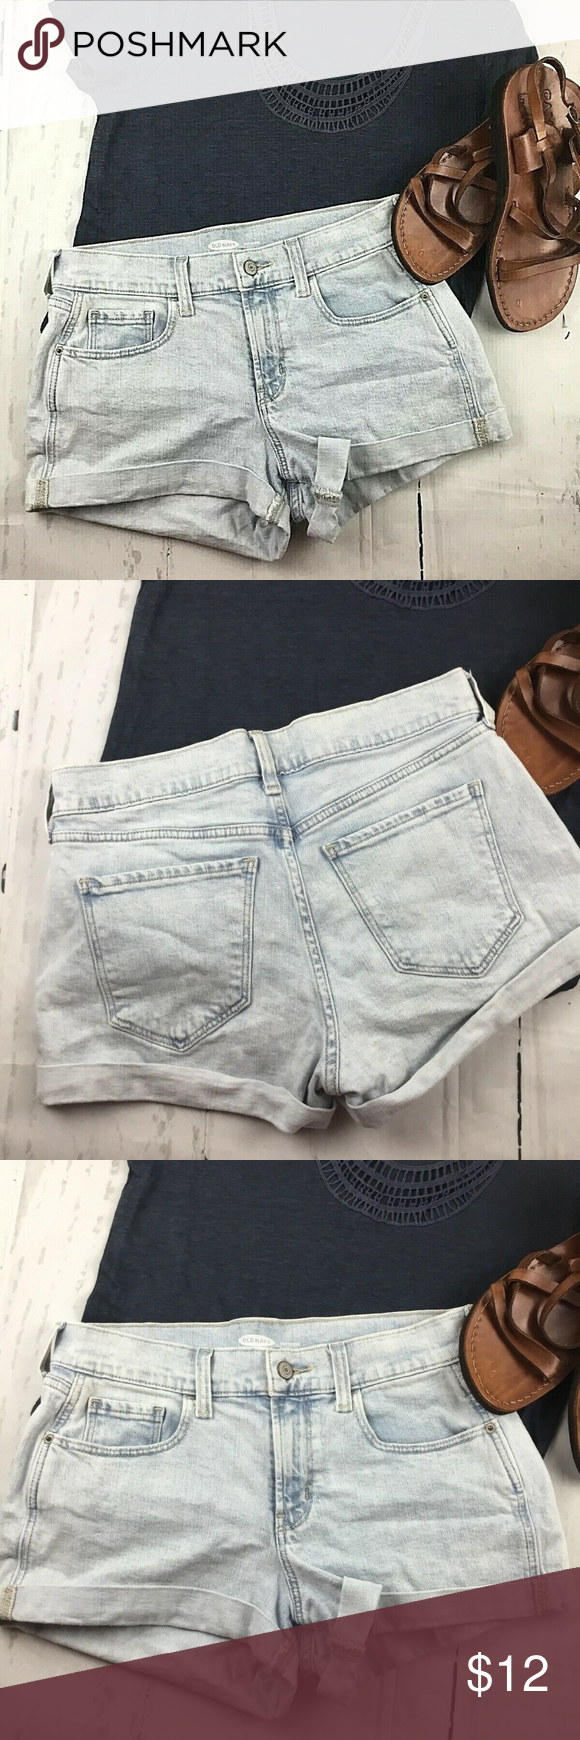 Old navy light blue Shorts size 2 Old navy light blue cuffed leg spandex denim boyfriend shorts Sz 2. Condition is Pre-owned. Shipped with USPS Priority Mail.  I sell on multiple apps so items sell quicker make an offer if interested. Old Navy Shorts Jean Shorts #lightblueshorts